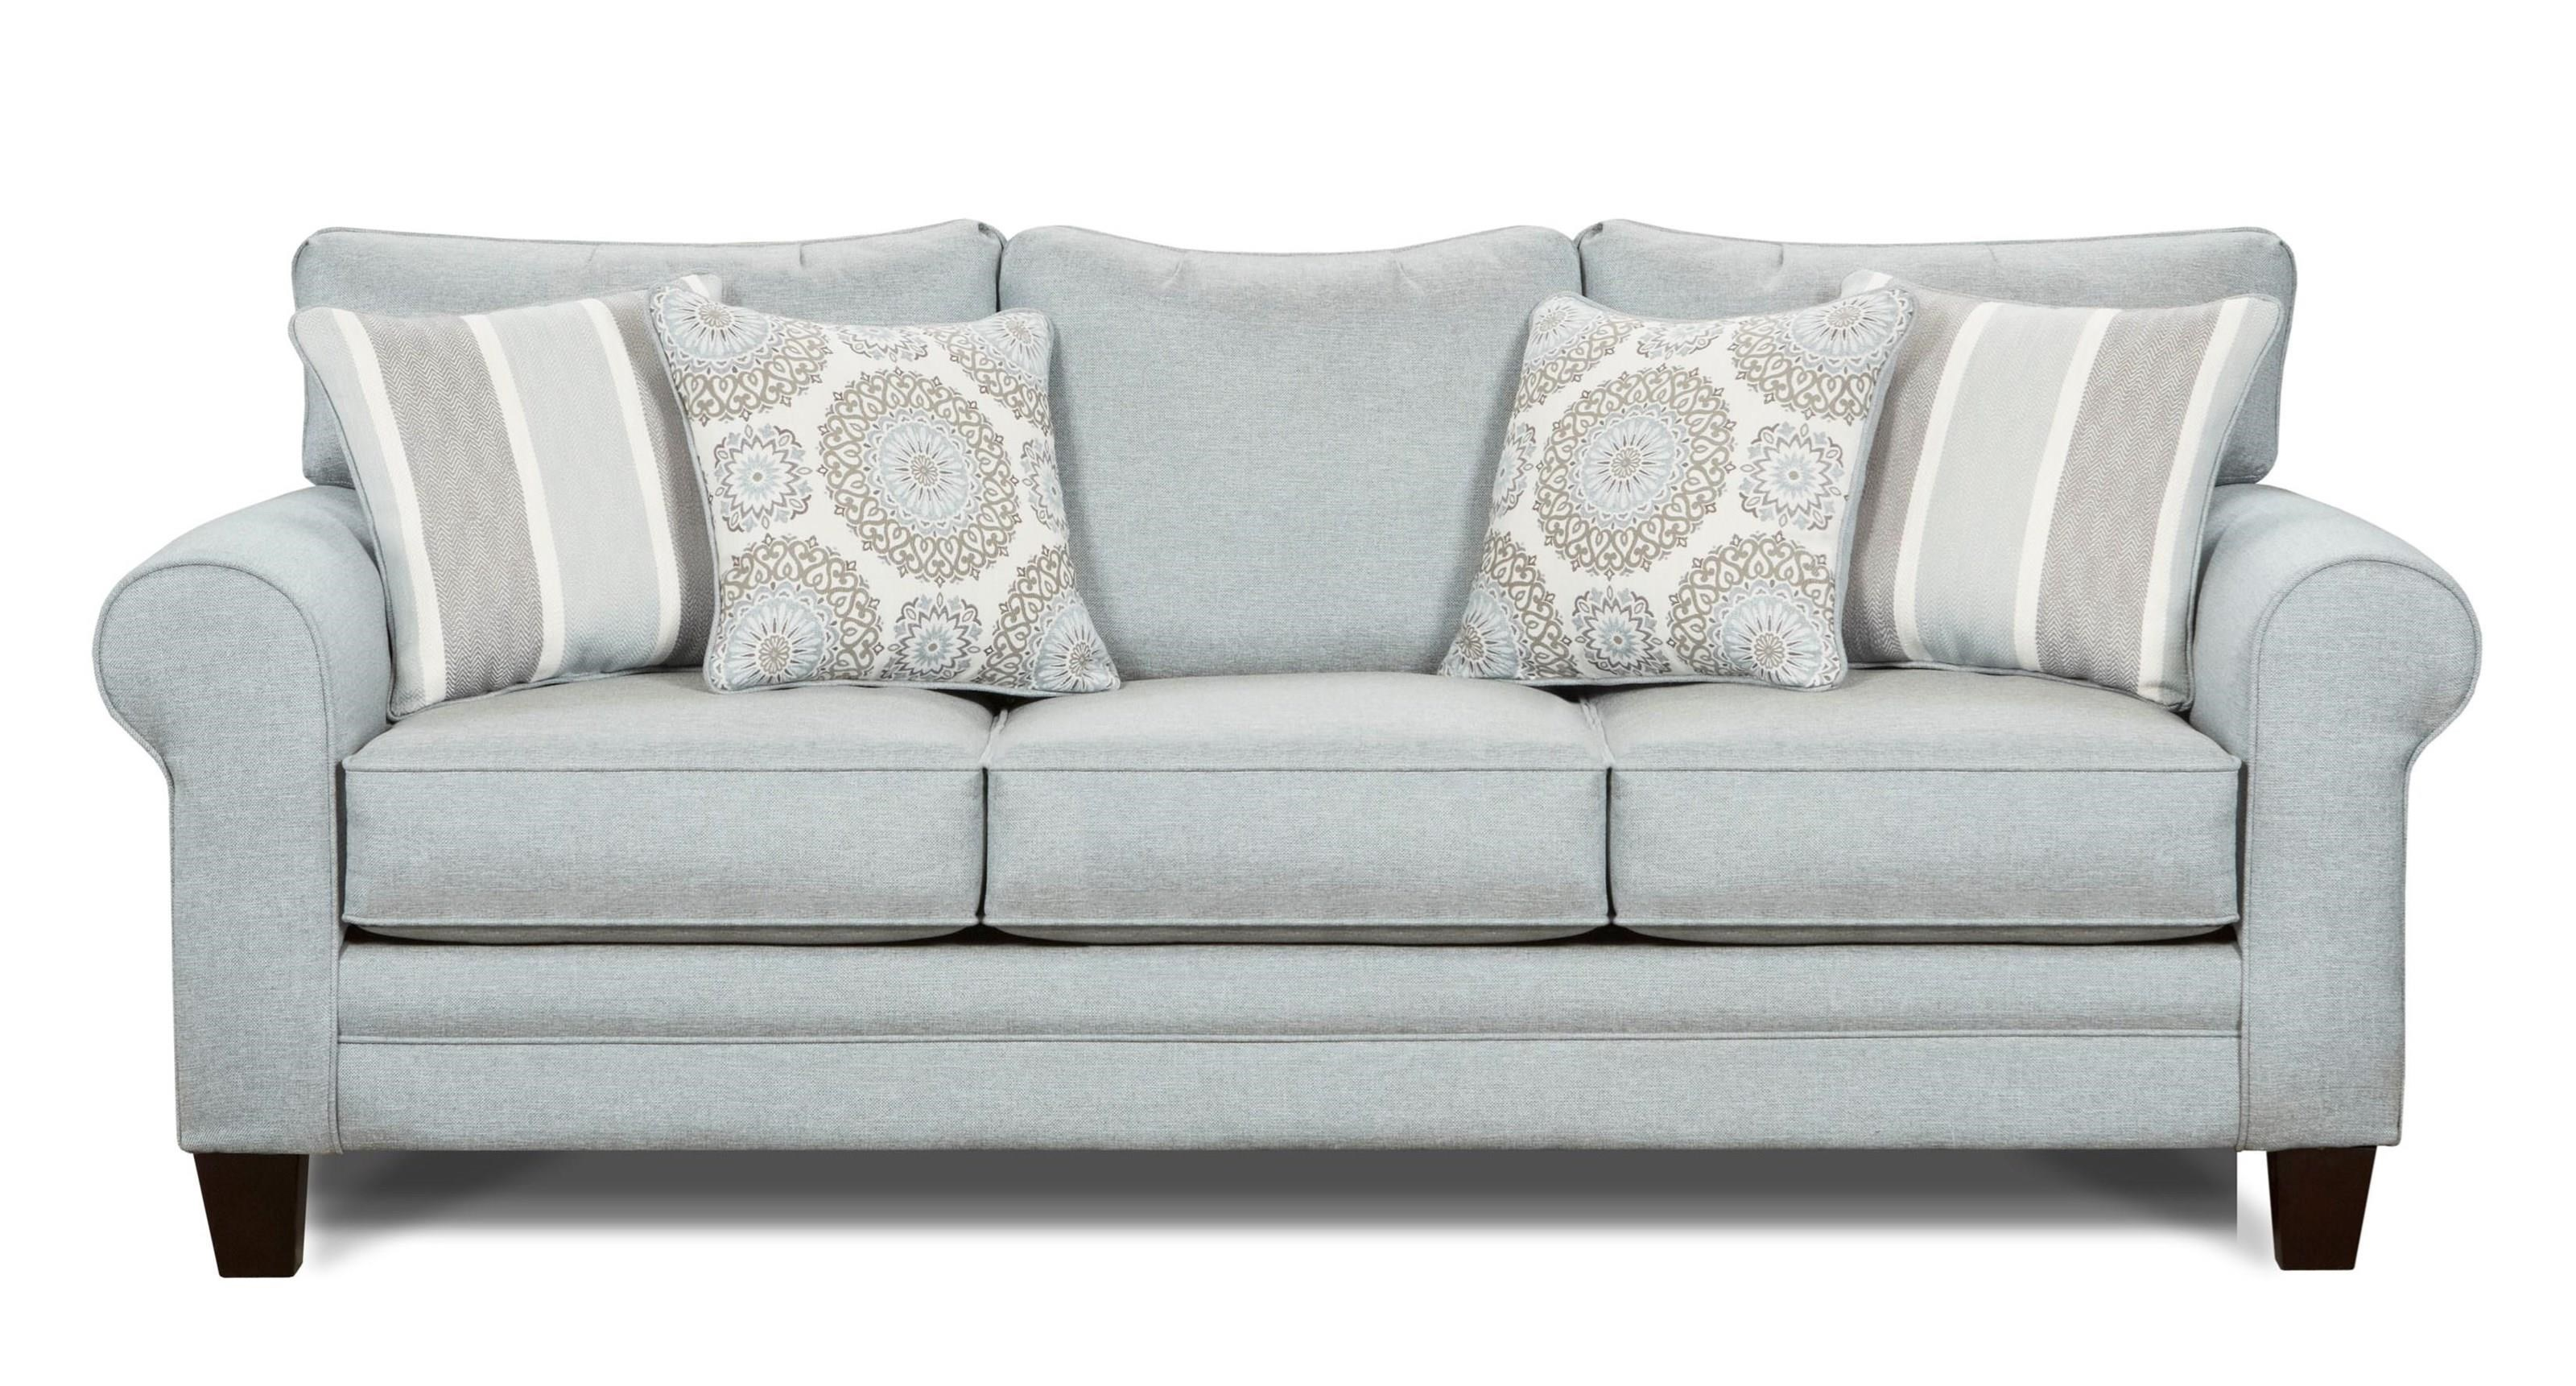 Fusion Furniture Grande Mist Sleeper Sofa - Item Number: 1144 GRANDE-MIST